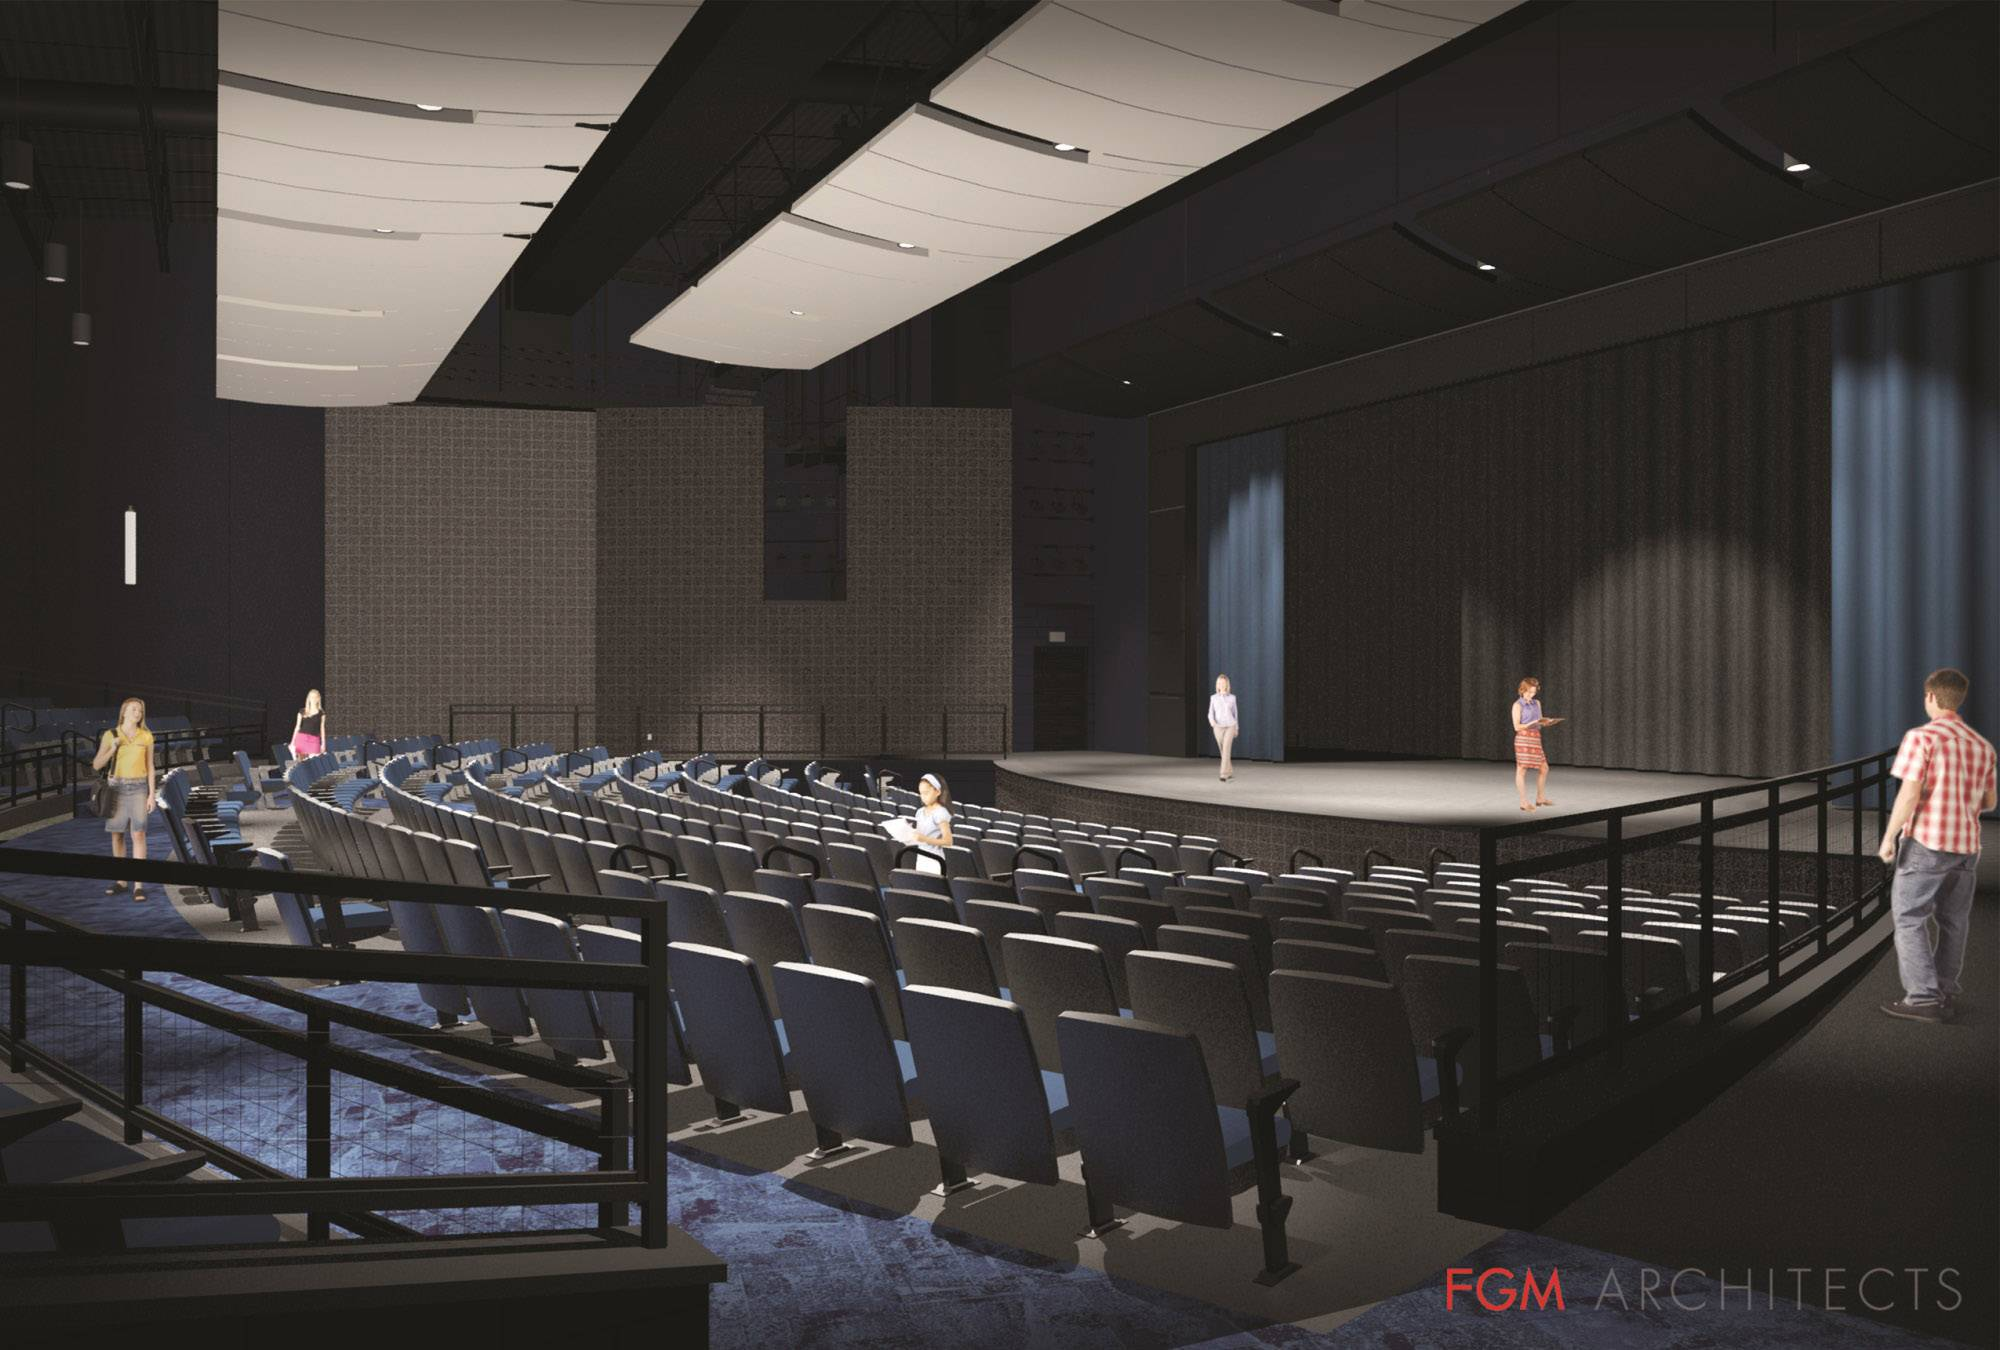 Cary-Grove High School's 50-year-old theater, main entrance, and lobby restrooms will be overhauled and improved. Part of this yearlong project involves reconfiguring the main entrance to provide enhanced safety and security during school days.